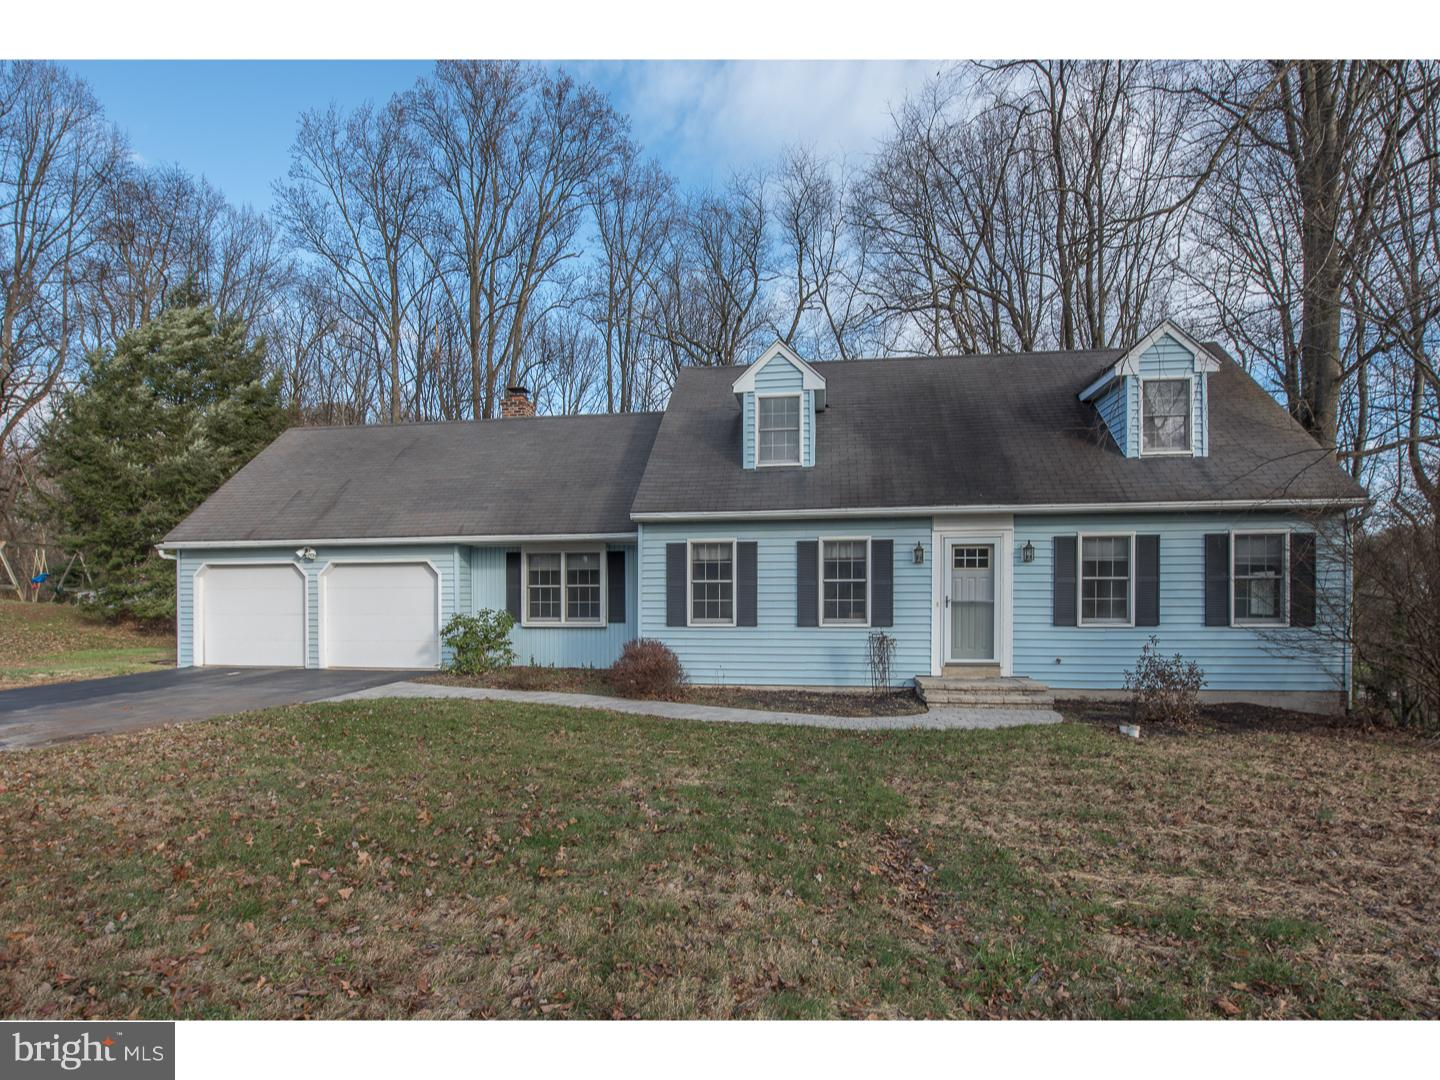 1233 Palomino Drive West Chester, PA 19380